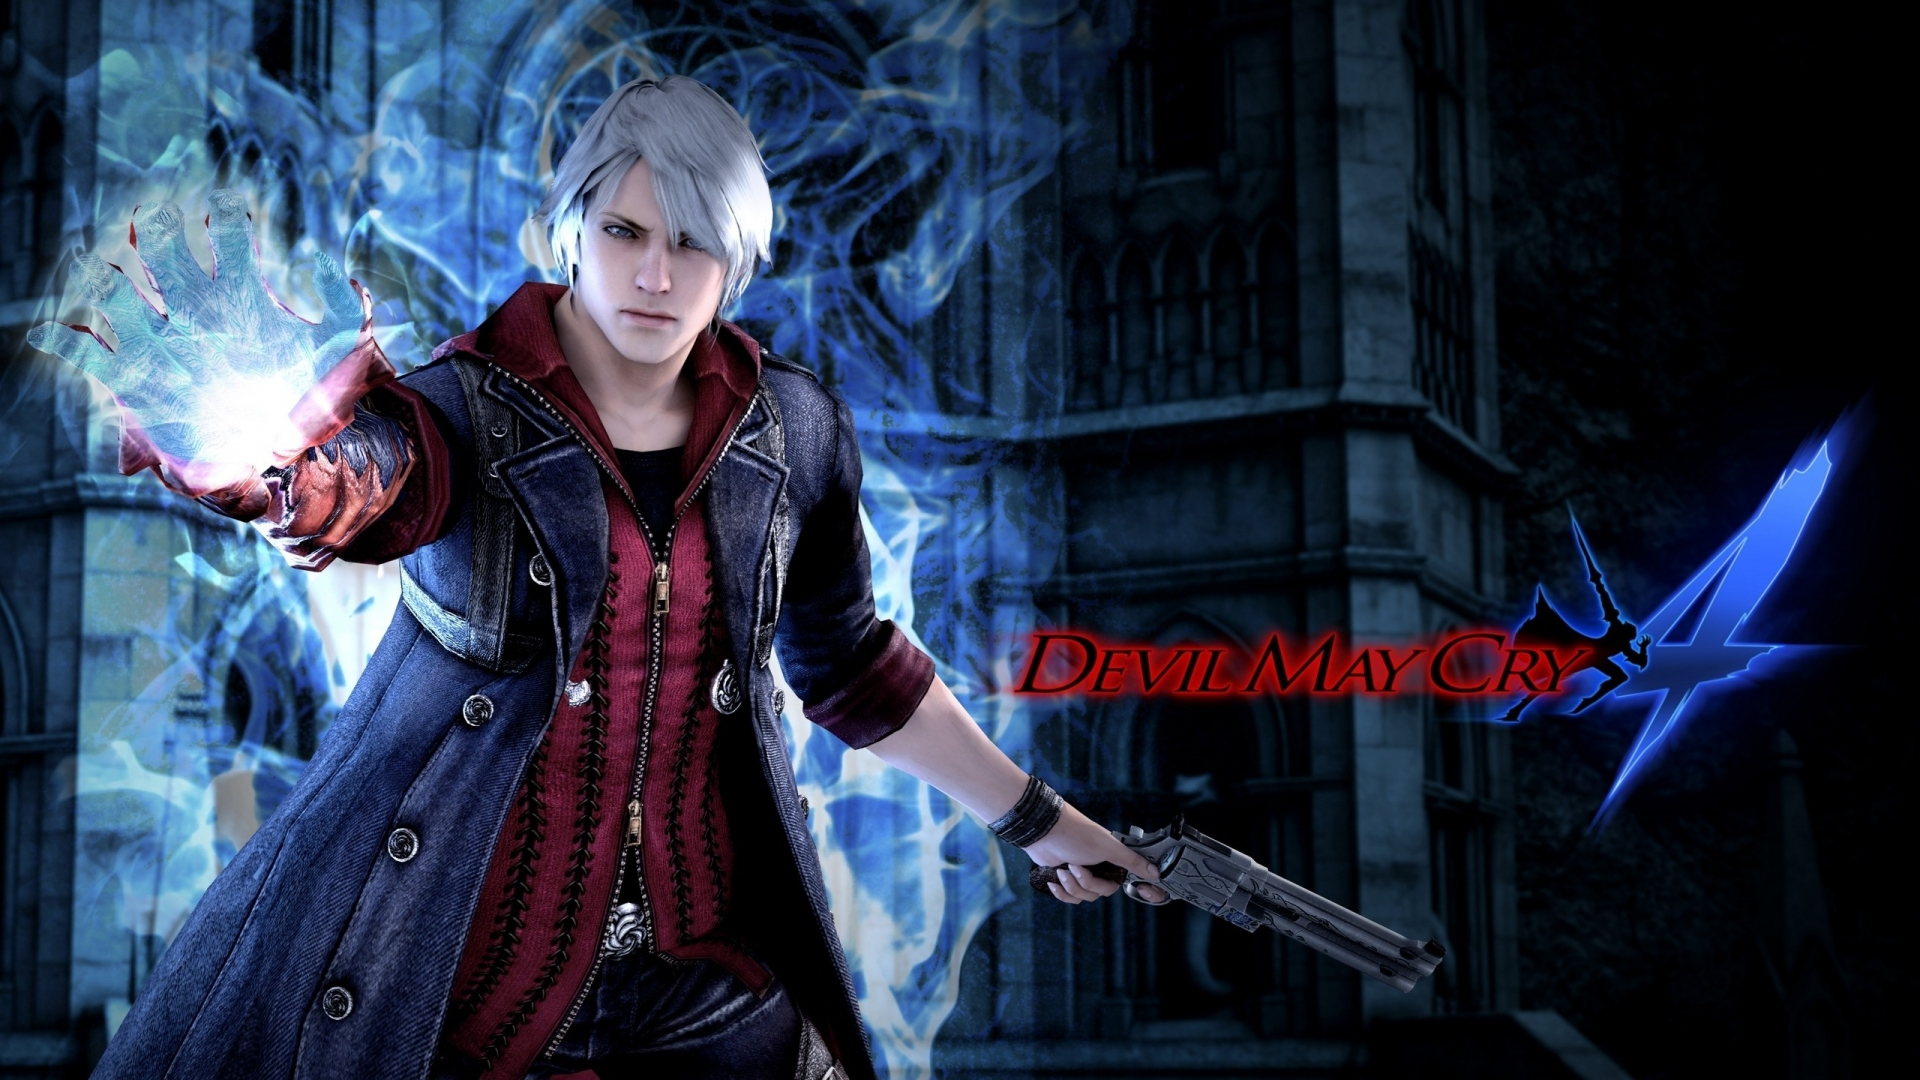 Devil May Cry 4 Game Poster